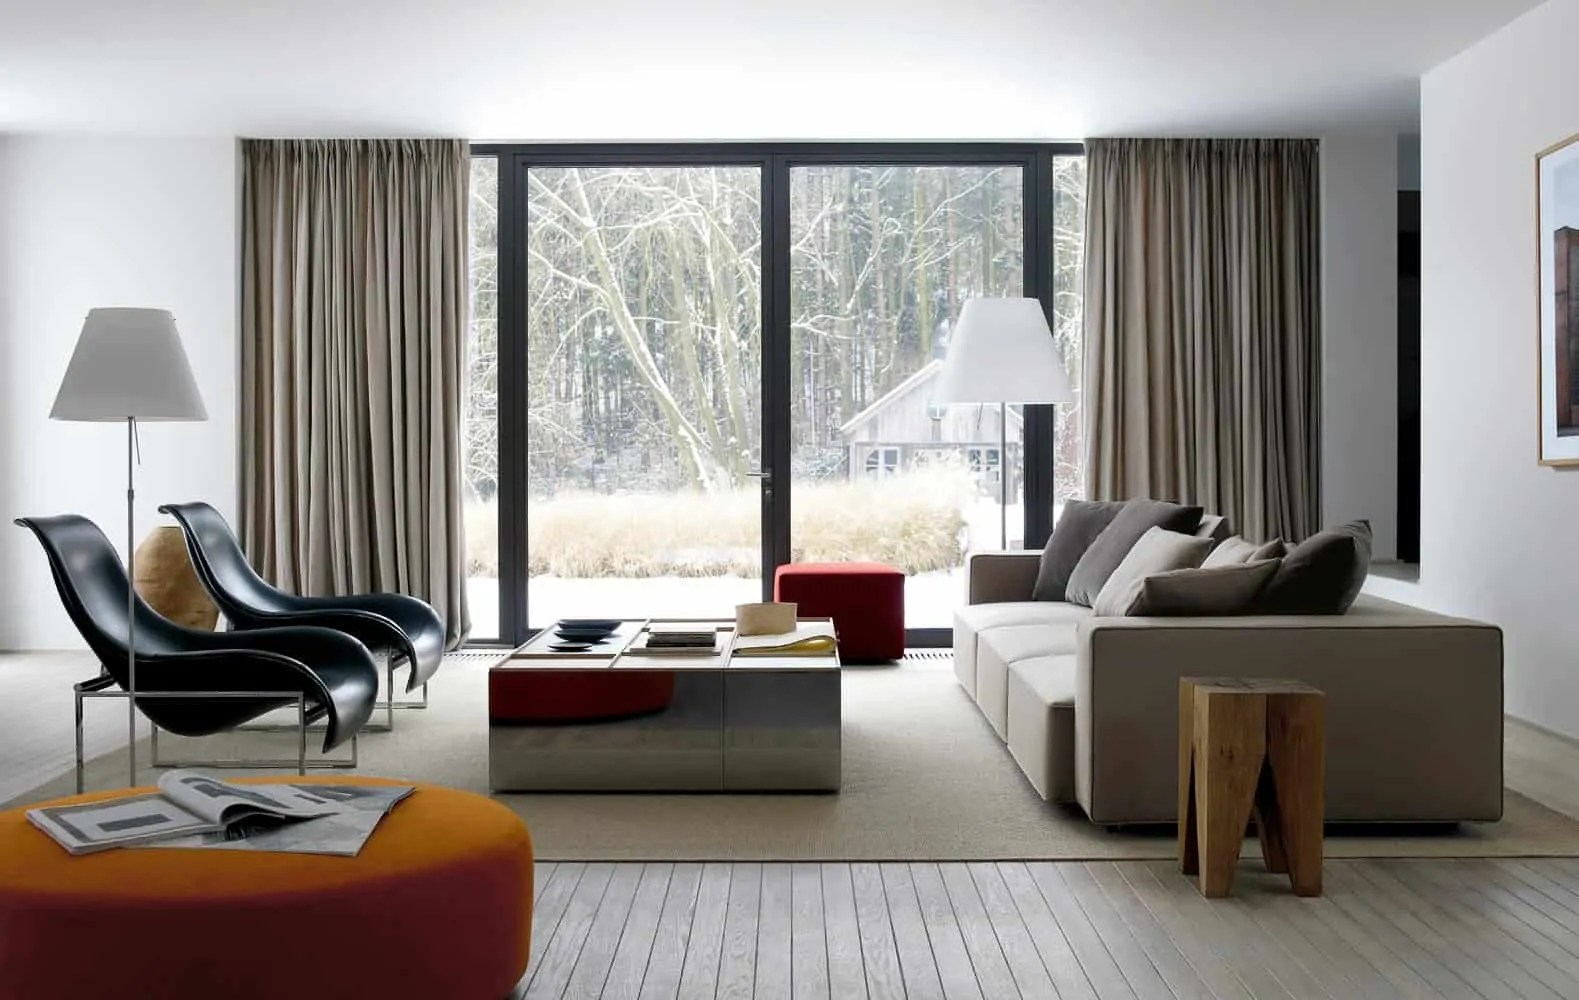 Best Modern Furniture Stores Usa Design Within Reach The Best In Modern  Furniture And Best Online. Best Modern Furniture Stores In The Usa